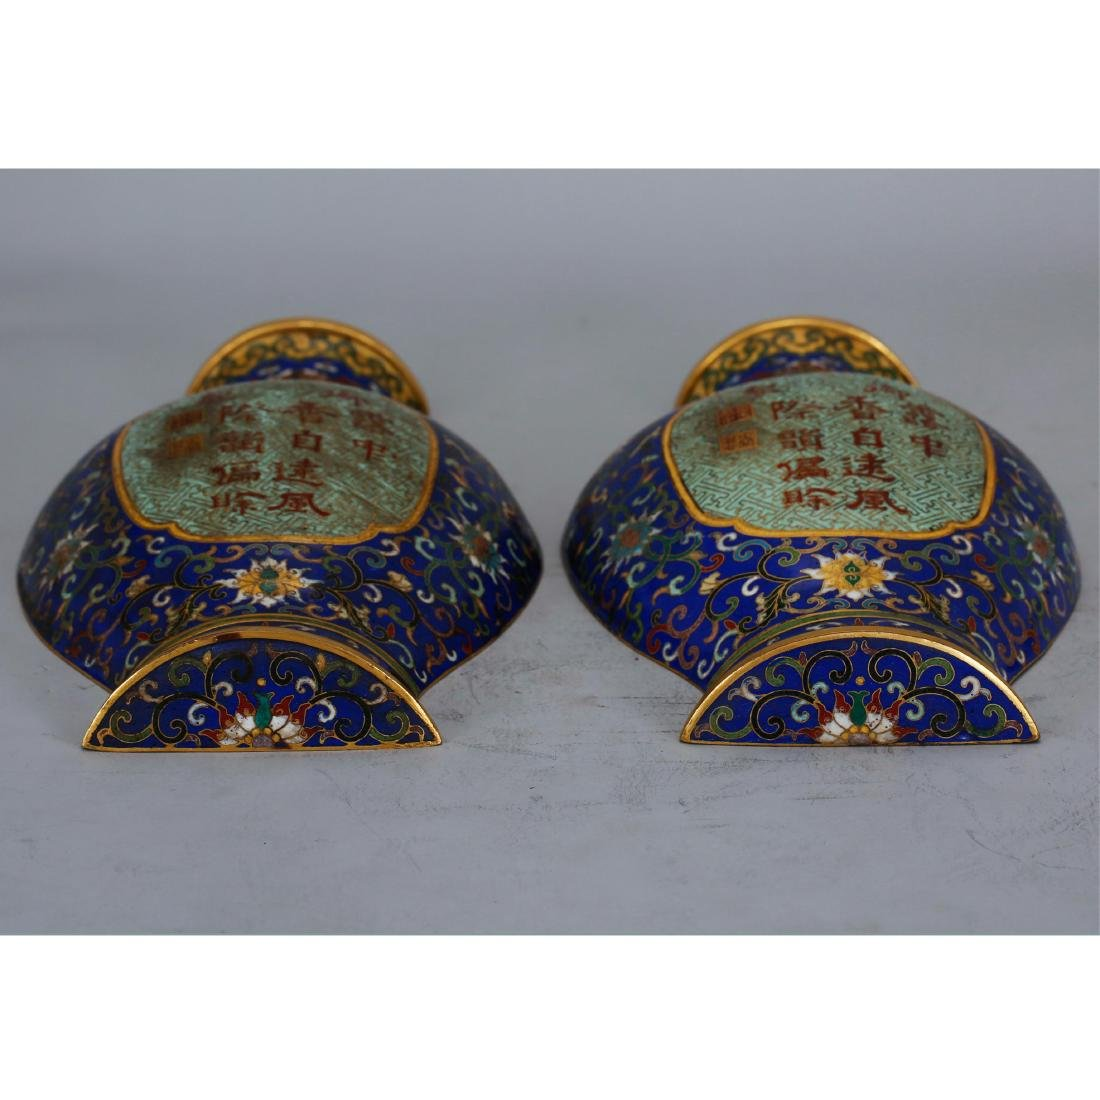 PAIR OF CHINESE CLOISONNE WALL VASES - 9